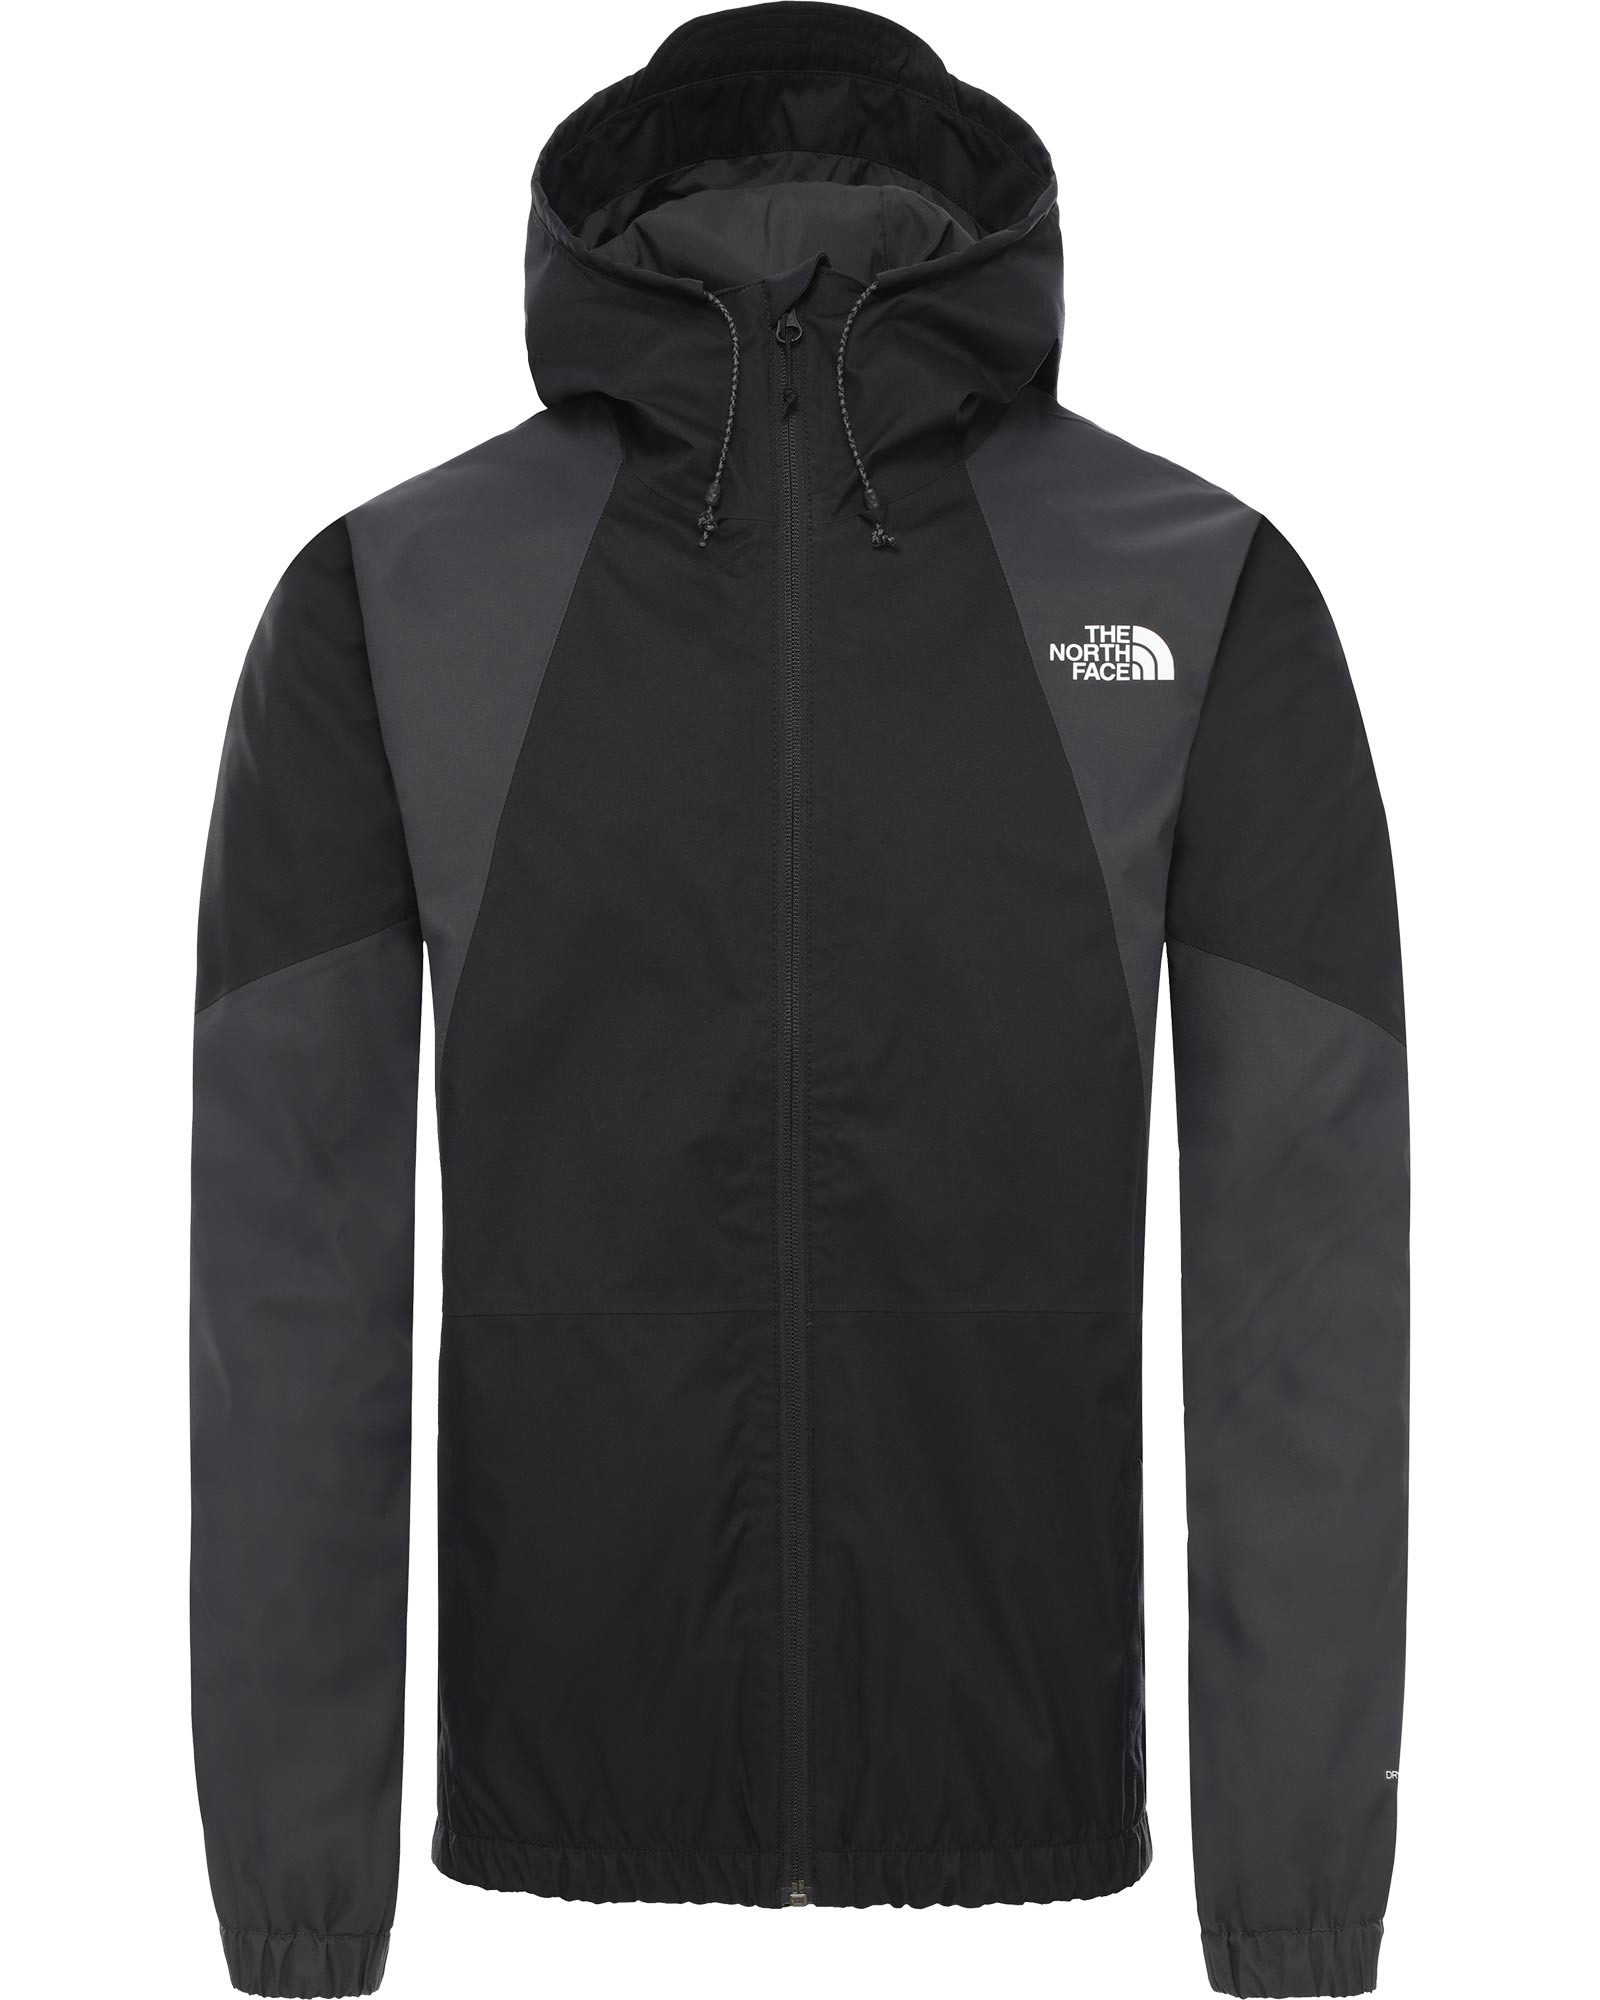 The North Face Mens Ceresio Jacket